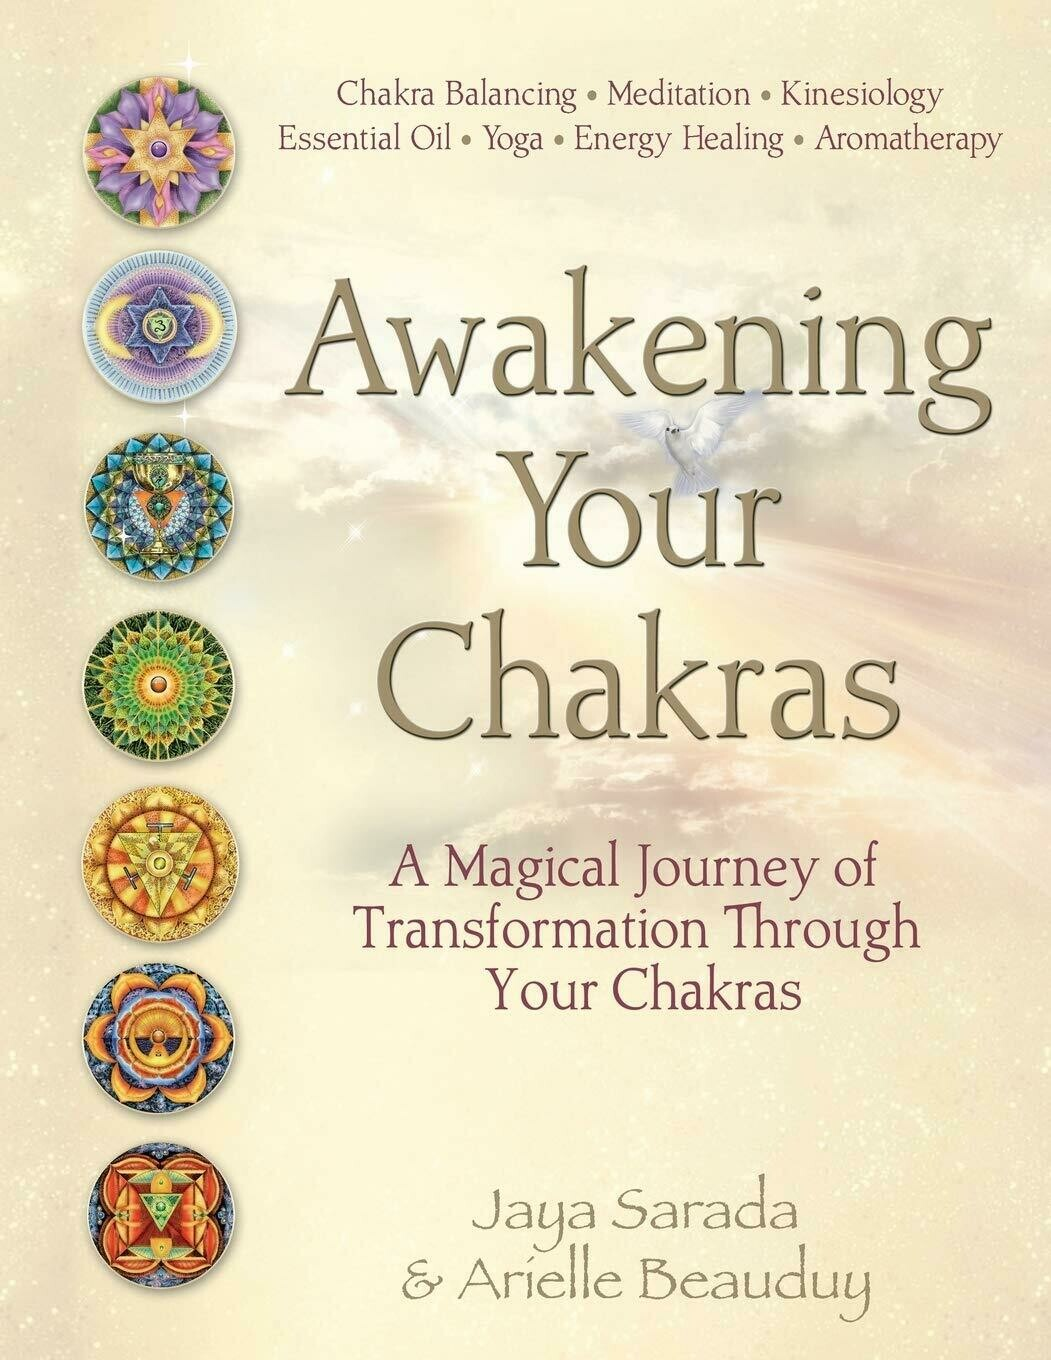 Awakening Your Chakras - A Magical Journey